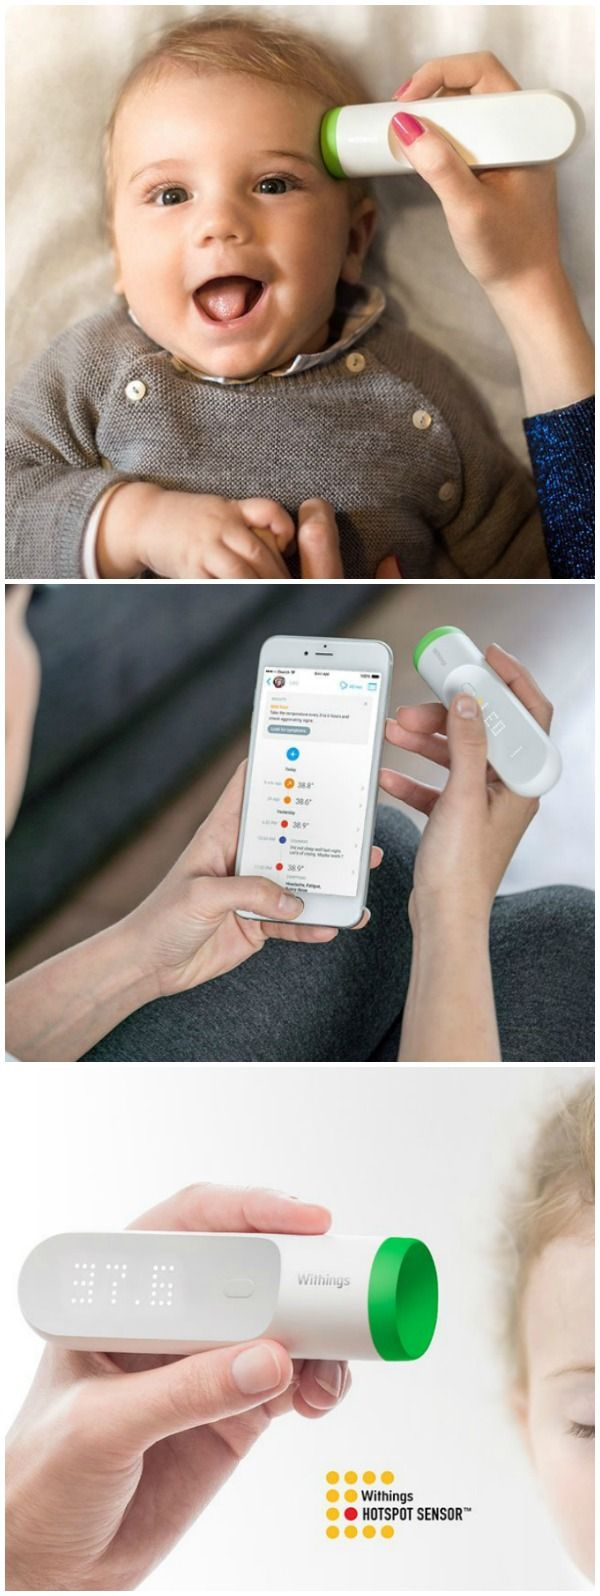 Withings Thermo is a hygienic, easy-to-use, temporal thermometer featuring 16 infrared sensors that take 4,000 measurements in just 2 seconds to provide a highly accurate result.